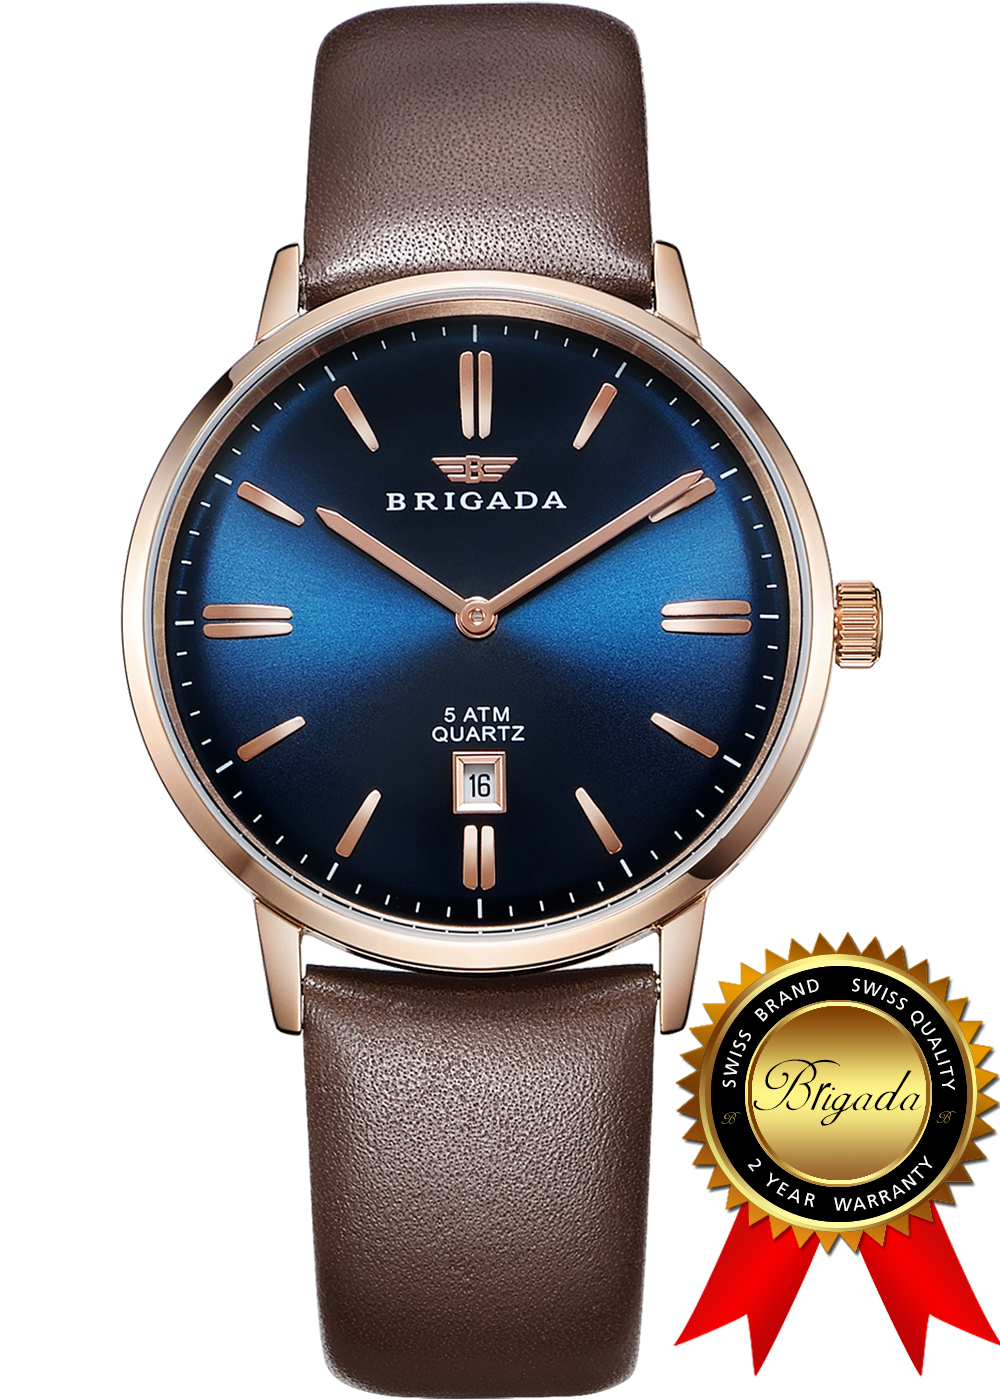 BRIGADA Swiss Watches for Men, Nice Business Casual Blue Brown Men's Watch, Great Gift for Someone or Yourself